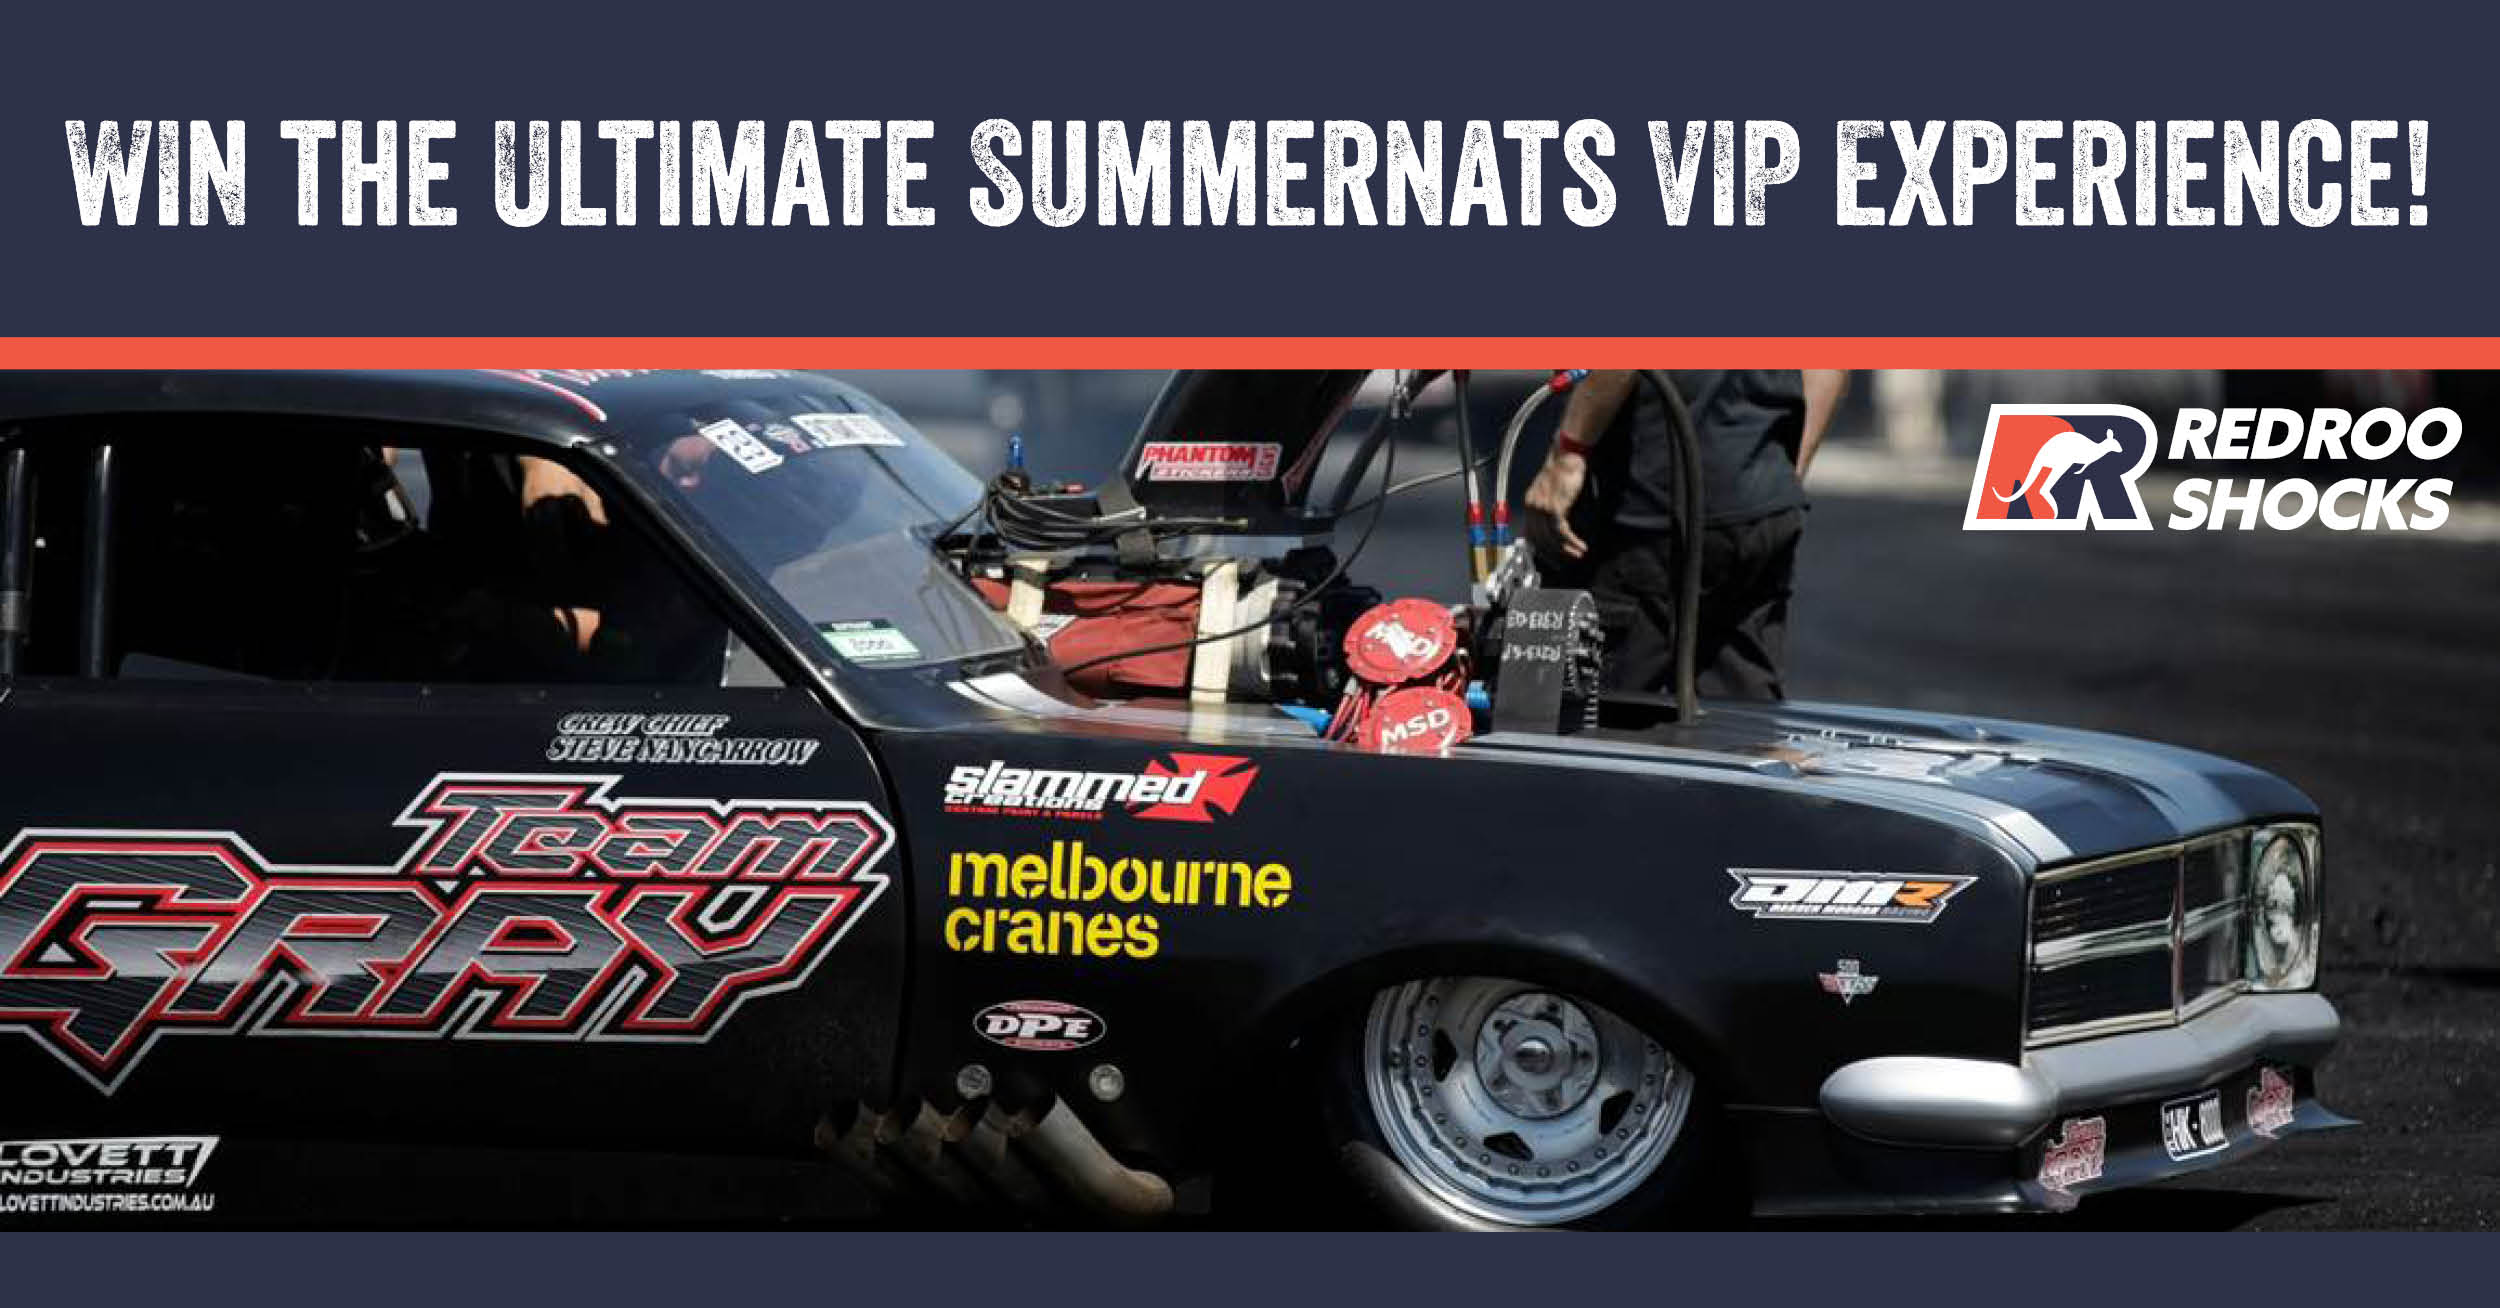 Win with RedRoo Shocks - Summernats VIP Experience